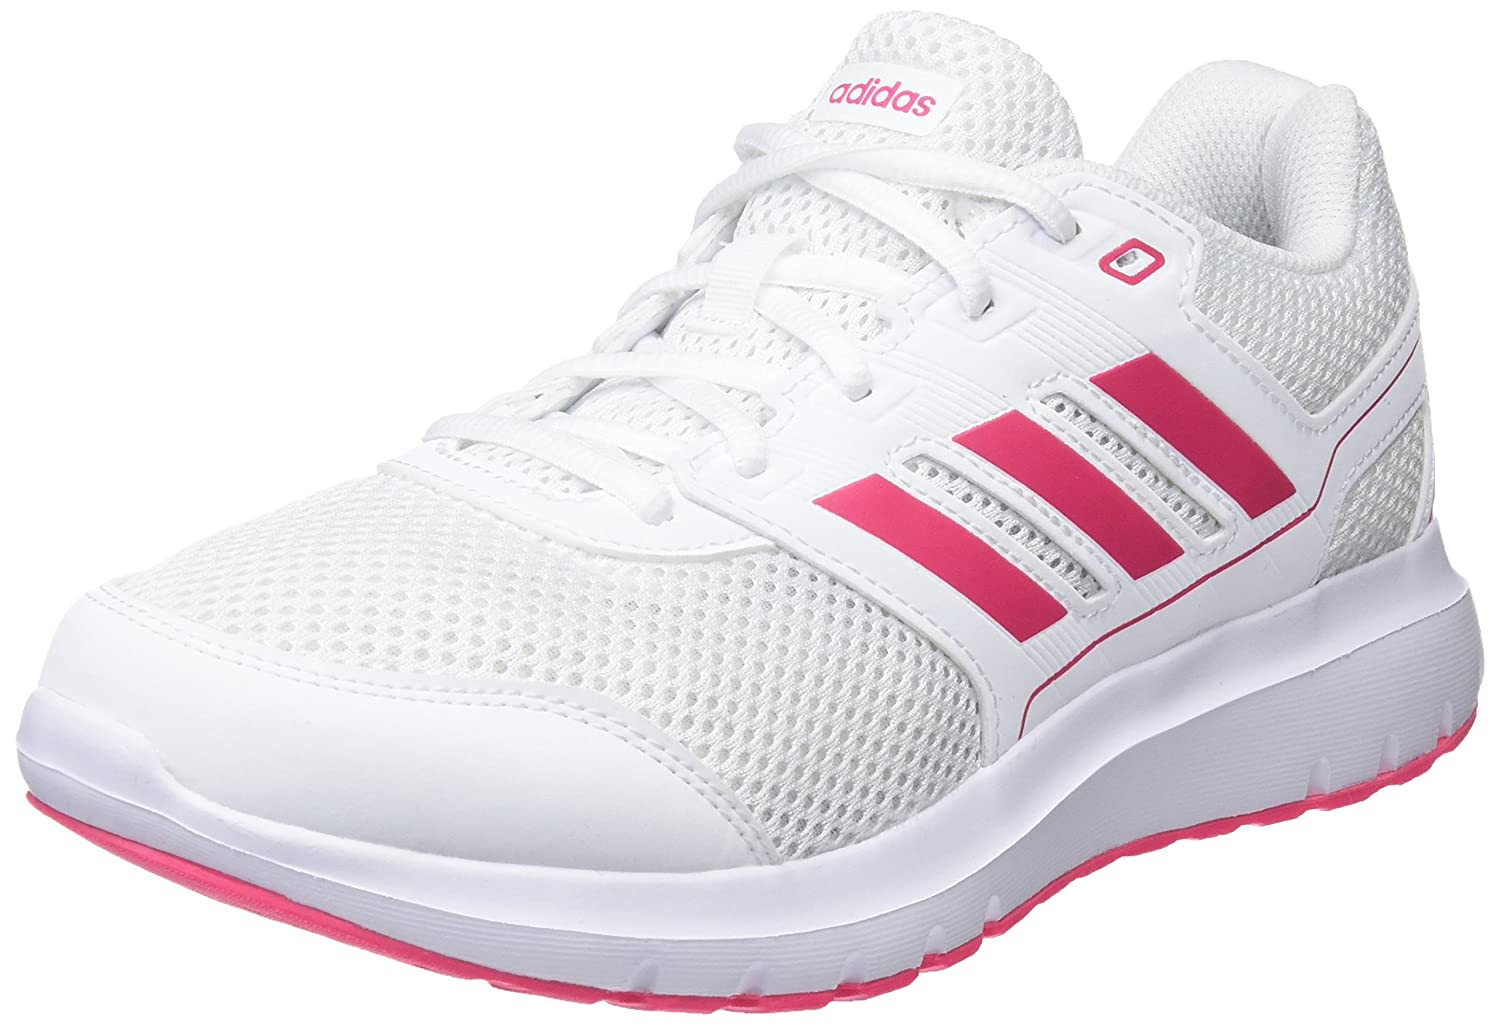 finest selection 5a25e e455c adidas Women  s Duramo Lite 2.0 Competition Running Shoes